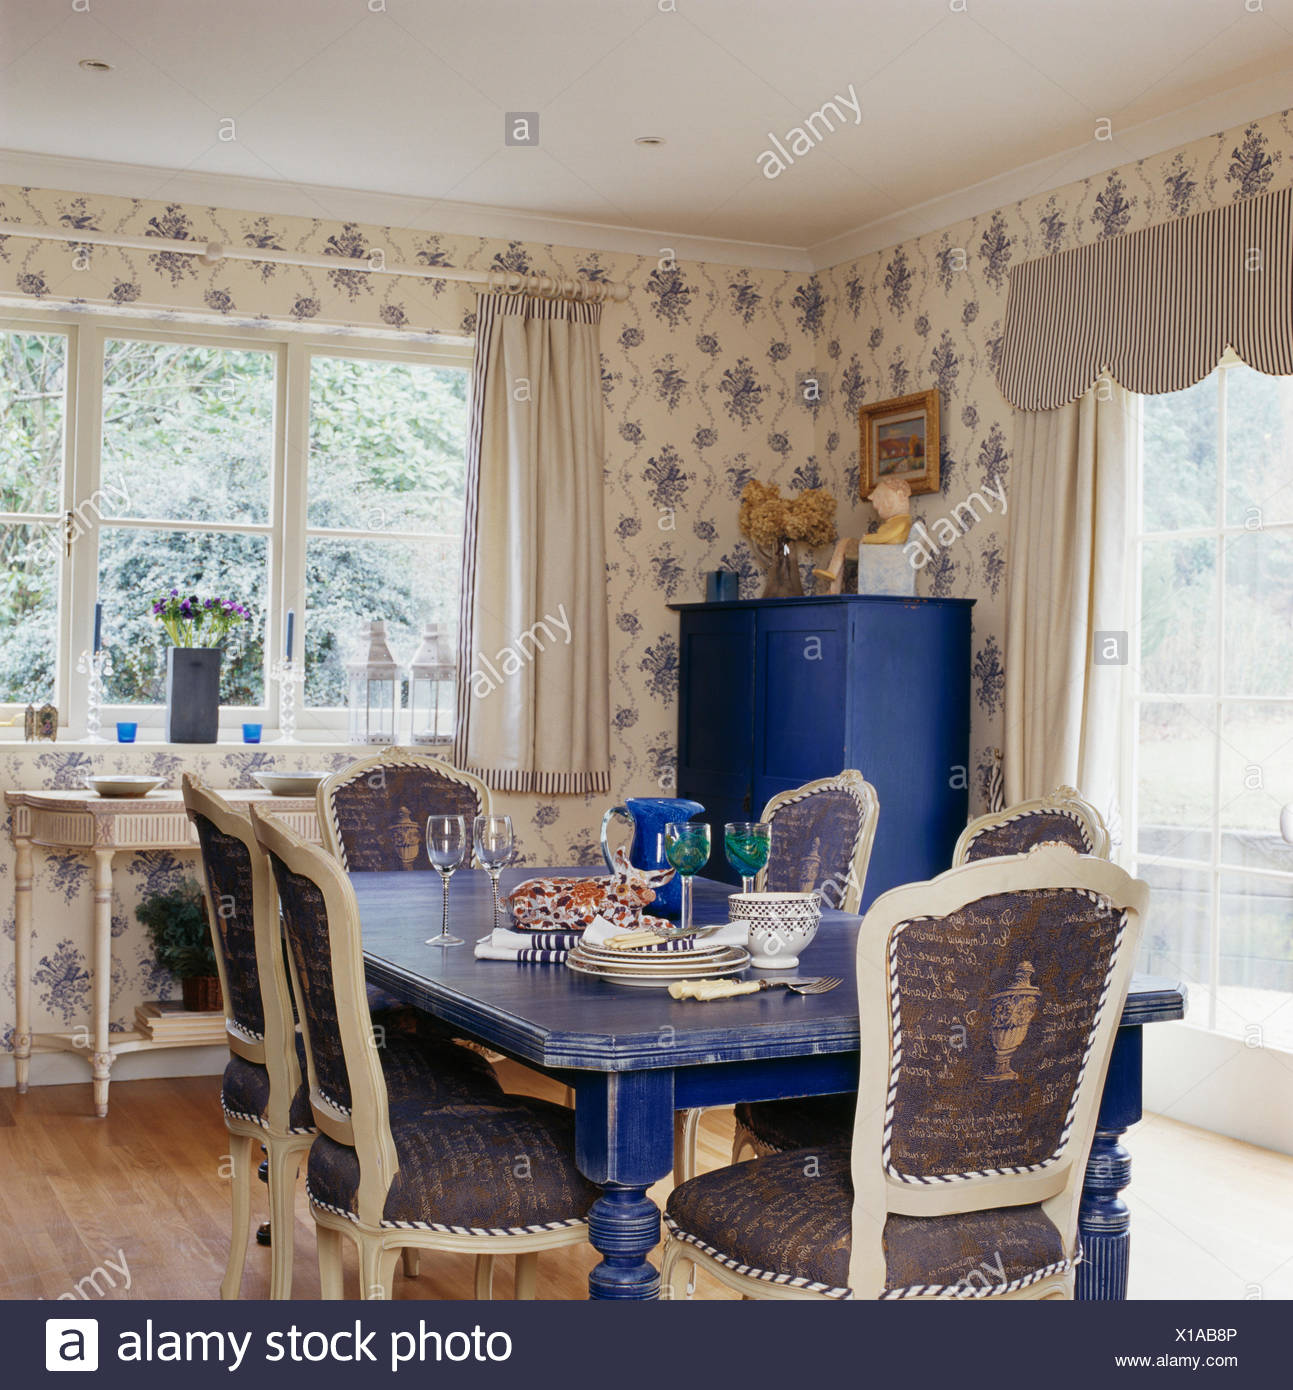 Upholstered white chairs and painted blue table in country dining 1293x1390